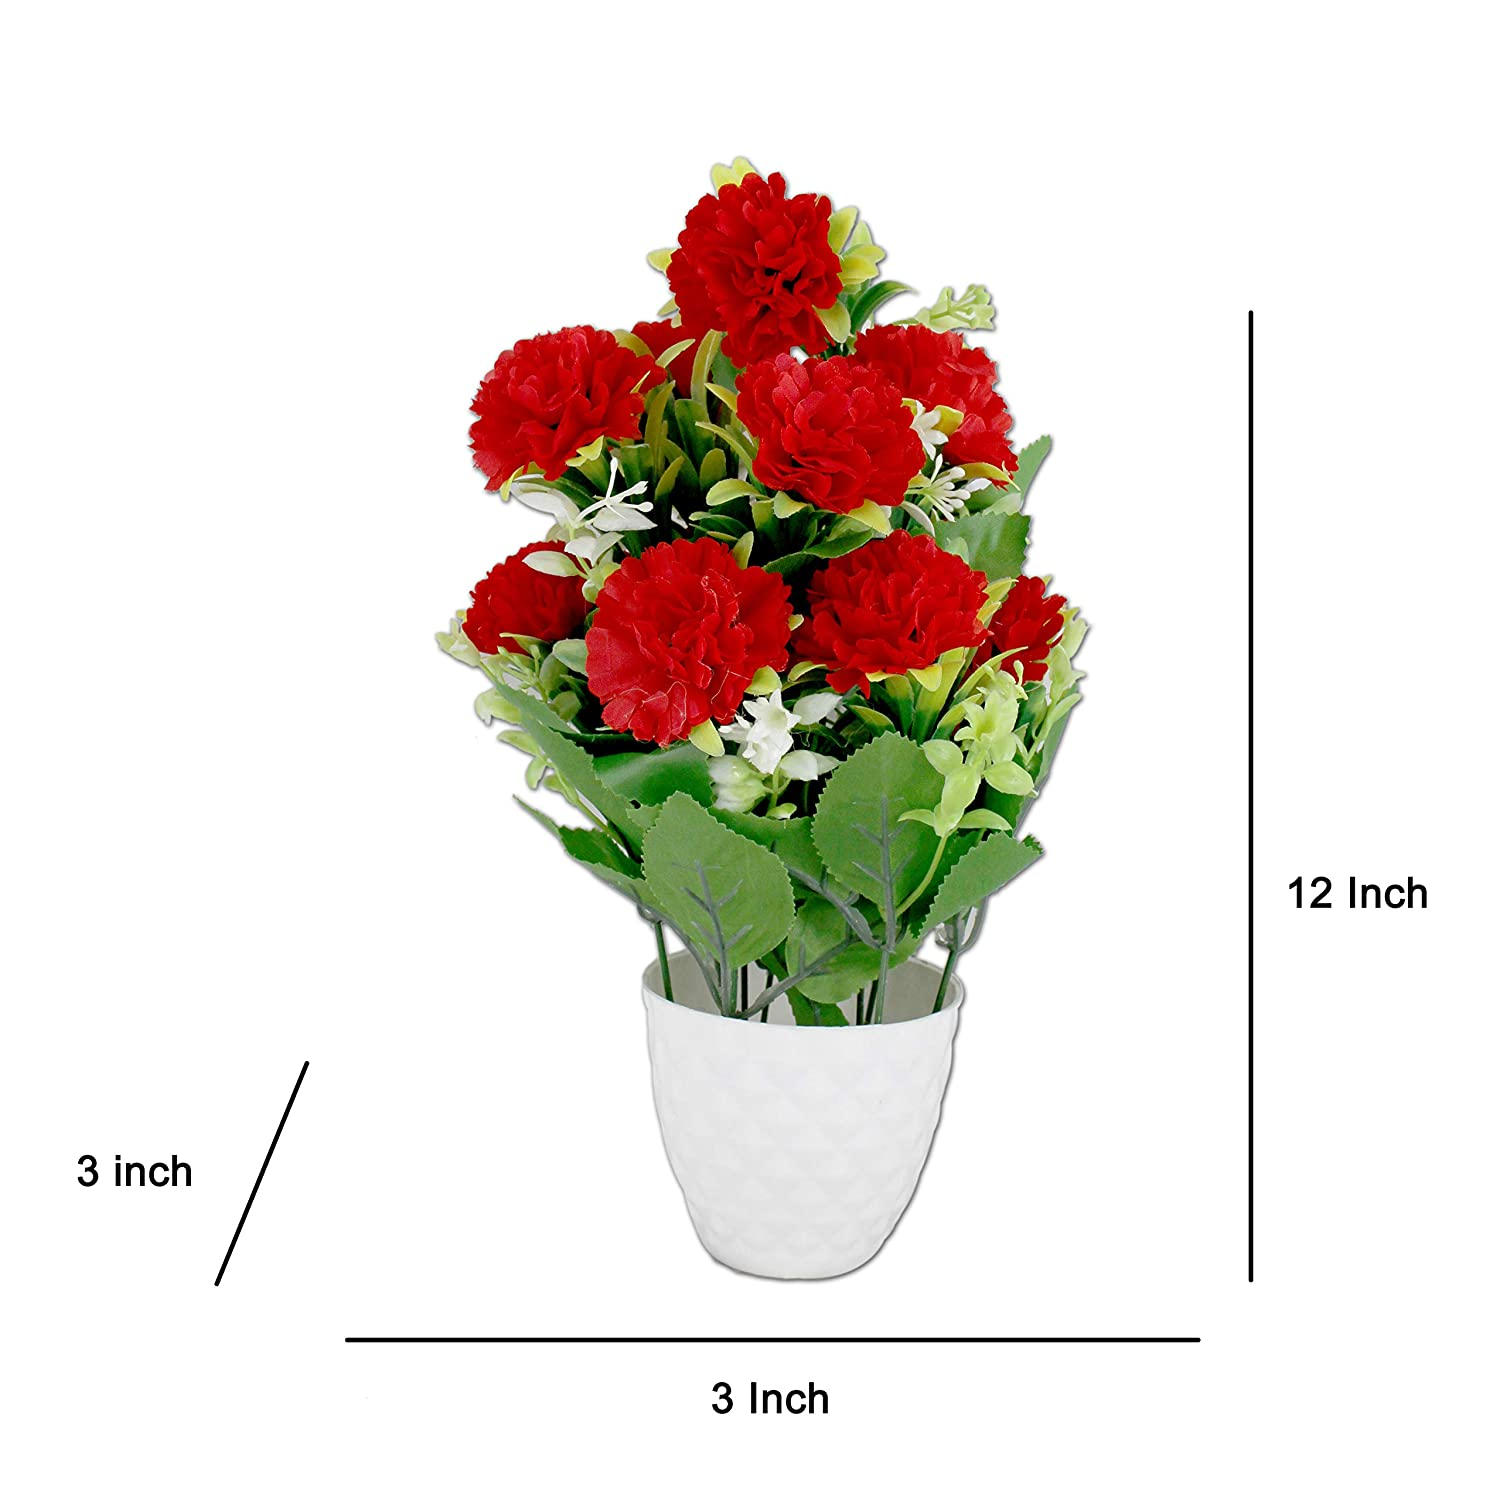 Buy Artificial Flower With Pot Flower Vase For Home Decoration Flower Pot With Artificial Flowers Artificial Flower With Plastic Pot Online At Low Prices In India Amazon In